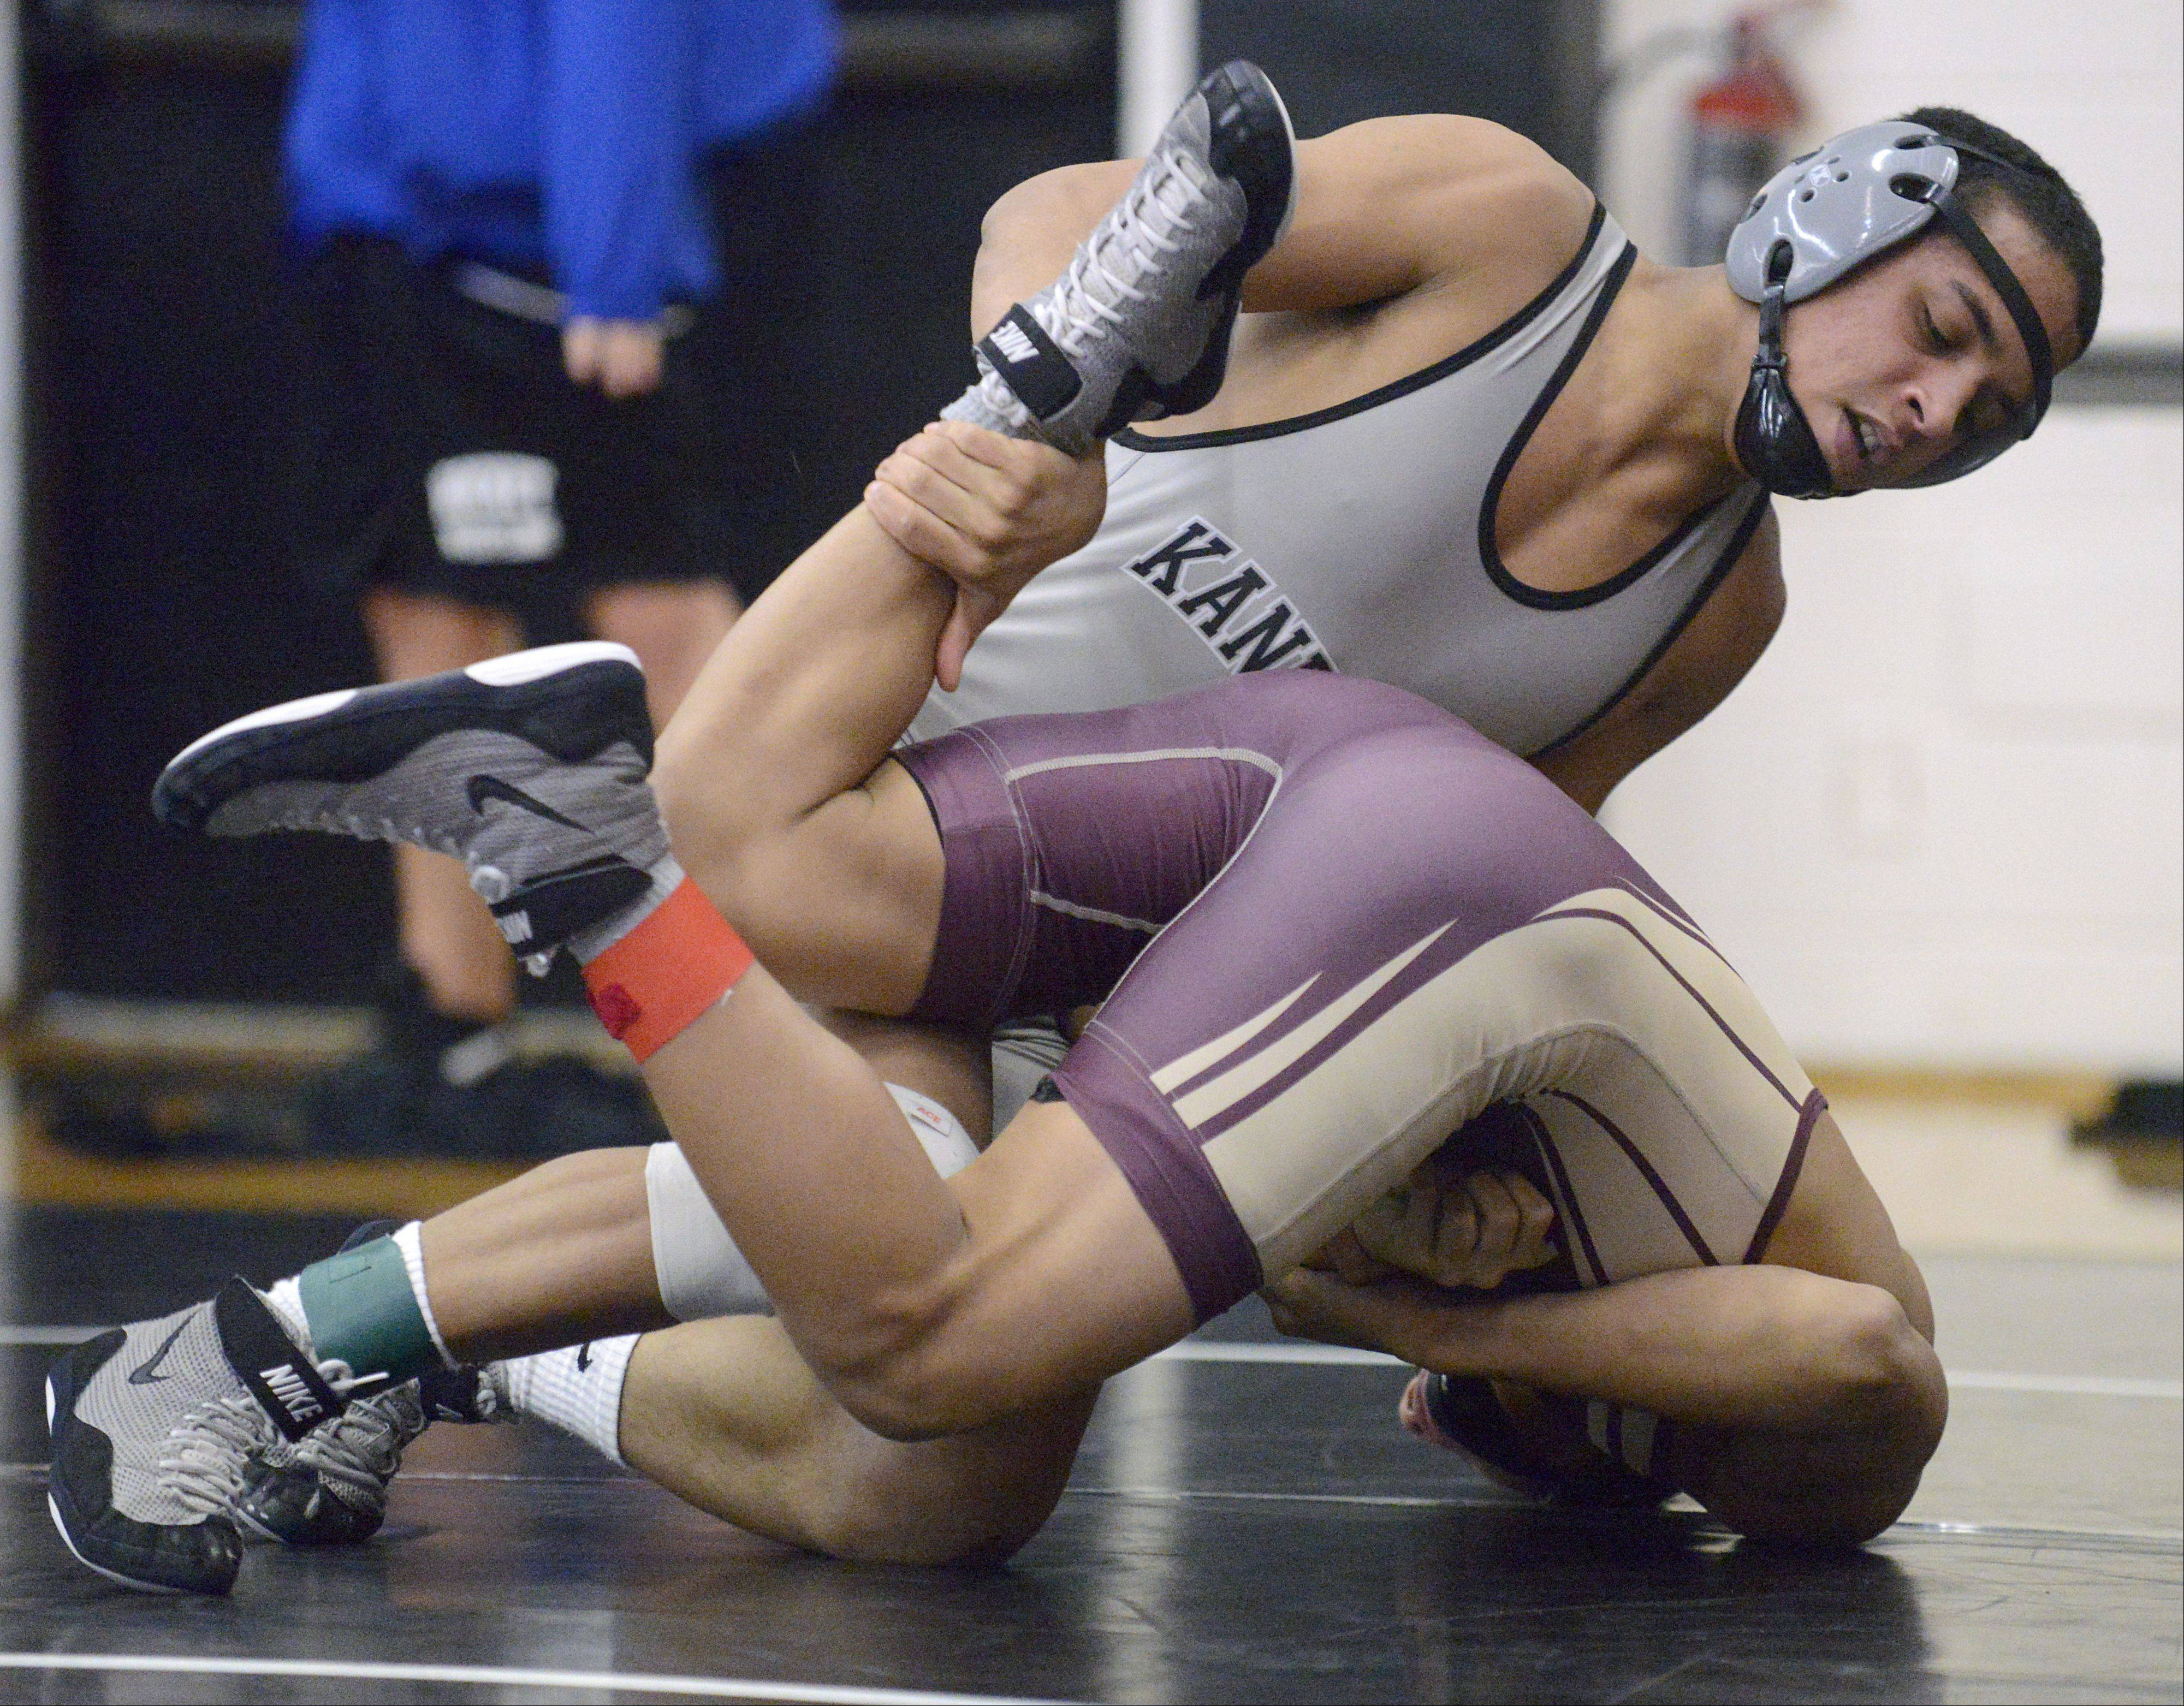 Kaneland's Esai Ponce takes the 132 pound match over Elgin's Nathaniel Romero on Saturday, January 12.